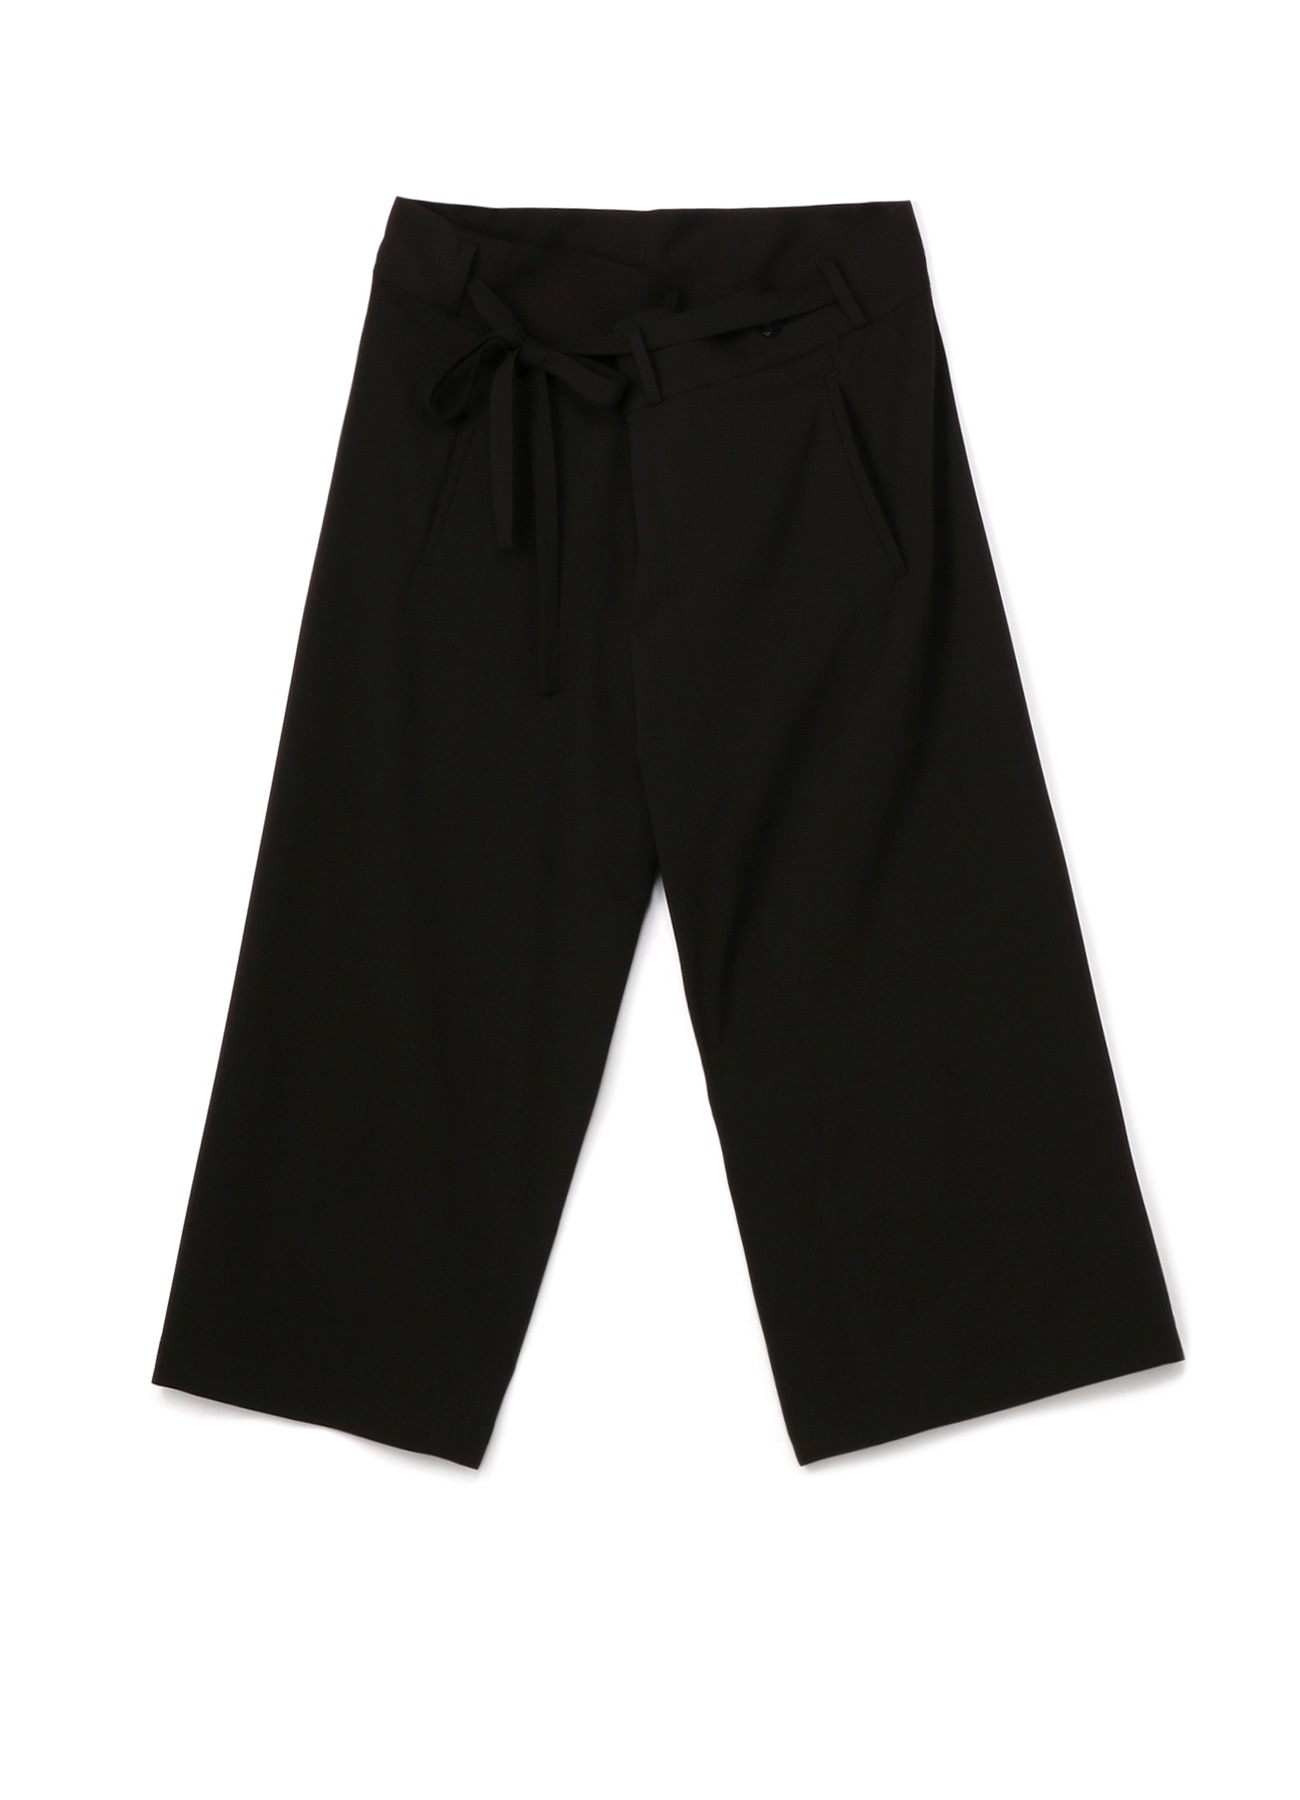 Pe / Rayon Gabardine Stretch Waist Fold Wide Pants